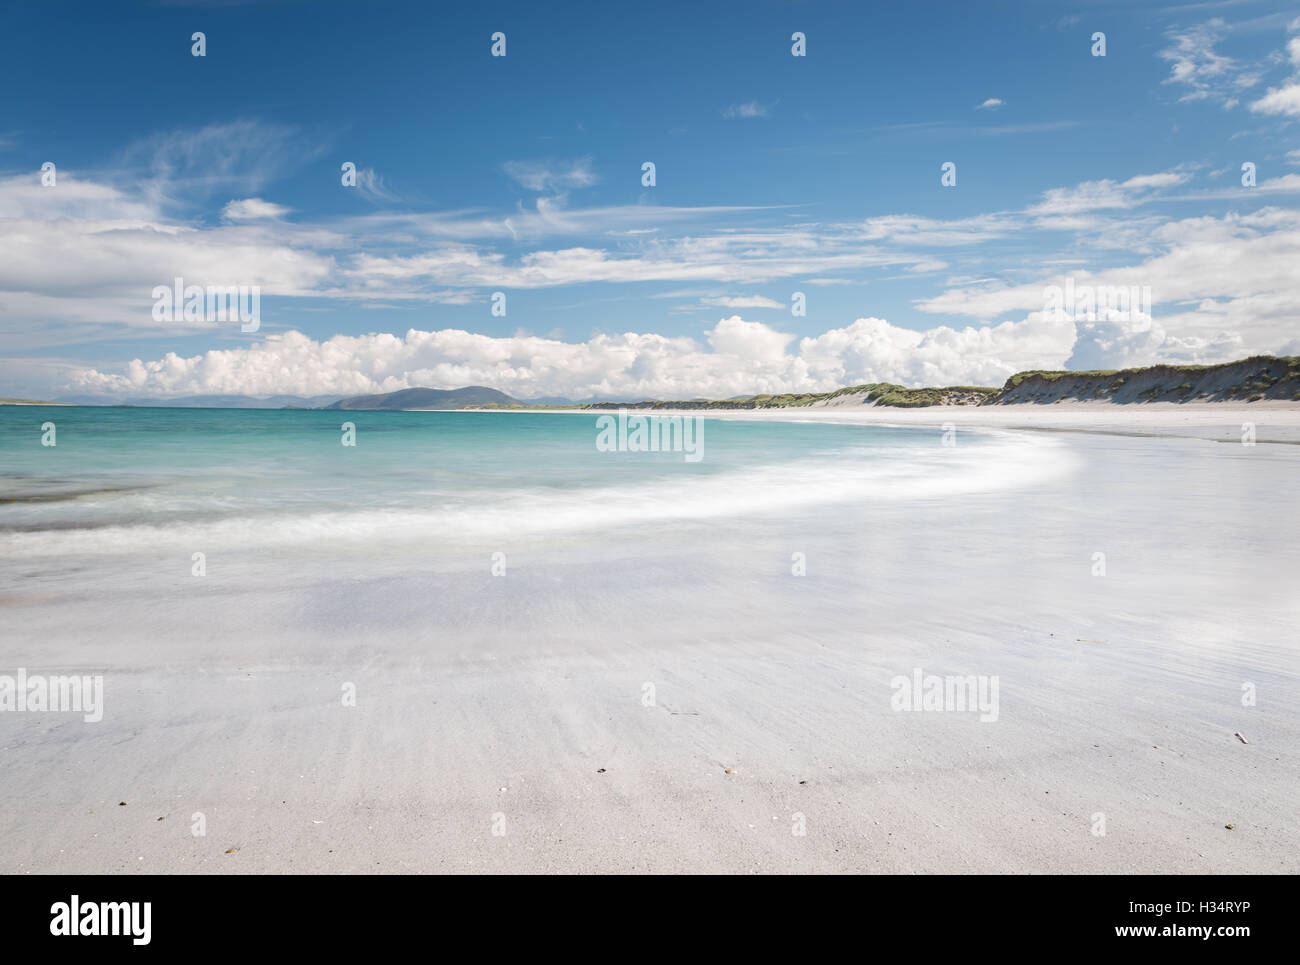 White sand and turquoise sea of West Beach, Berneray, Outer Hebrides, Western Isles, Scotland - Stock Image